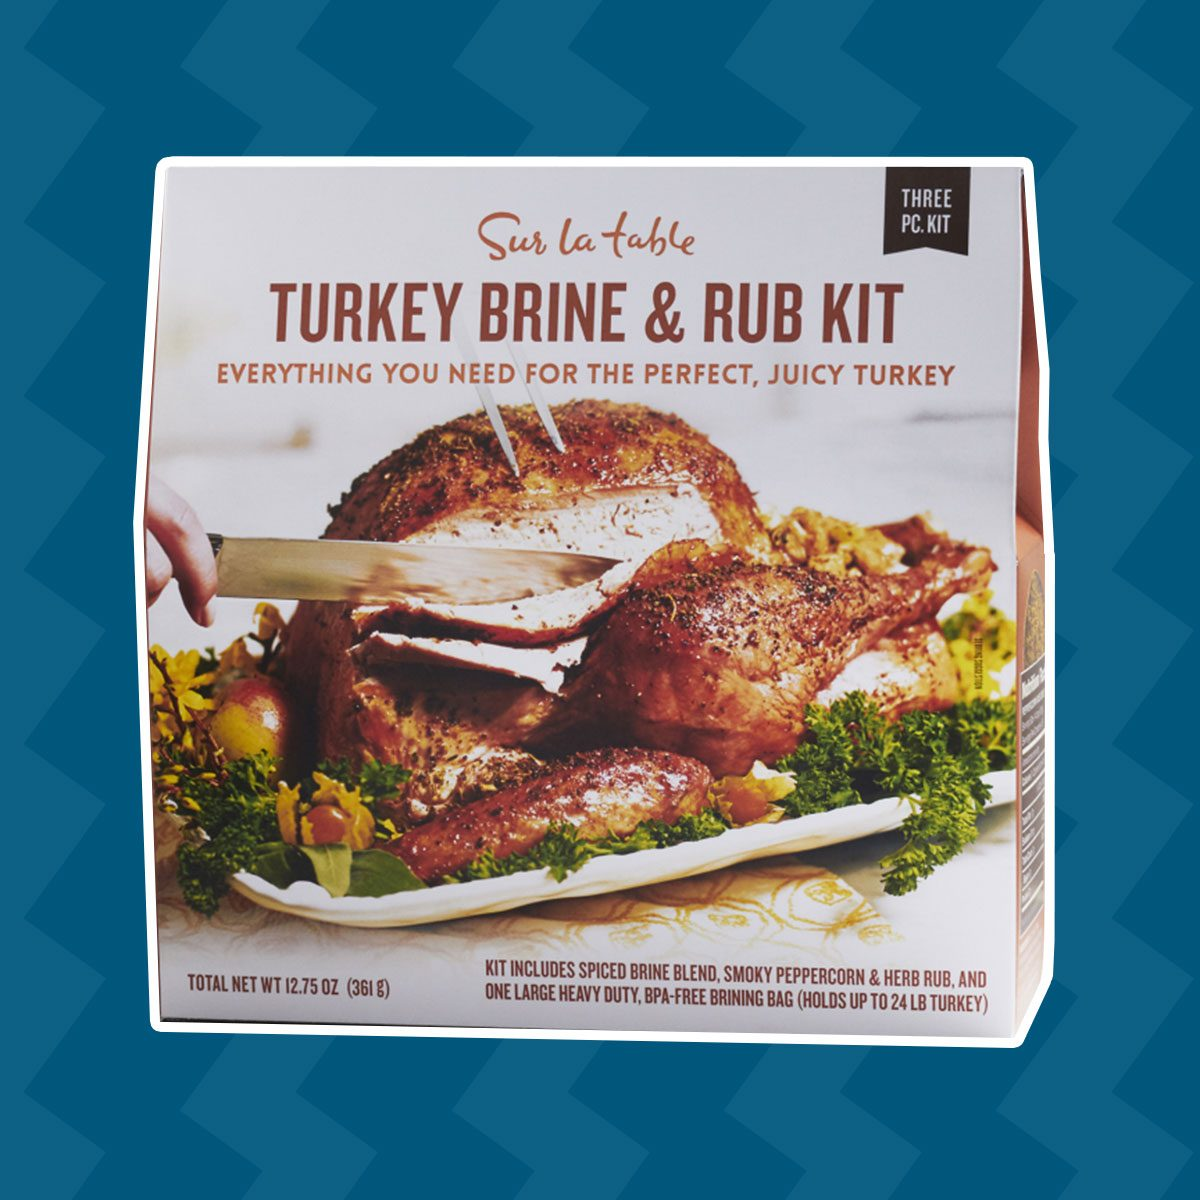 10 Things That Make Cooking Thanksgiving Dinner a Breeze